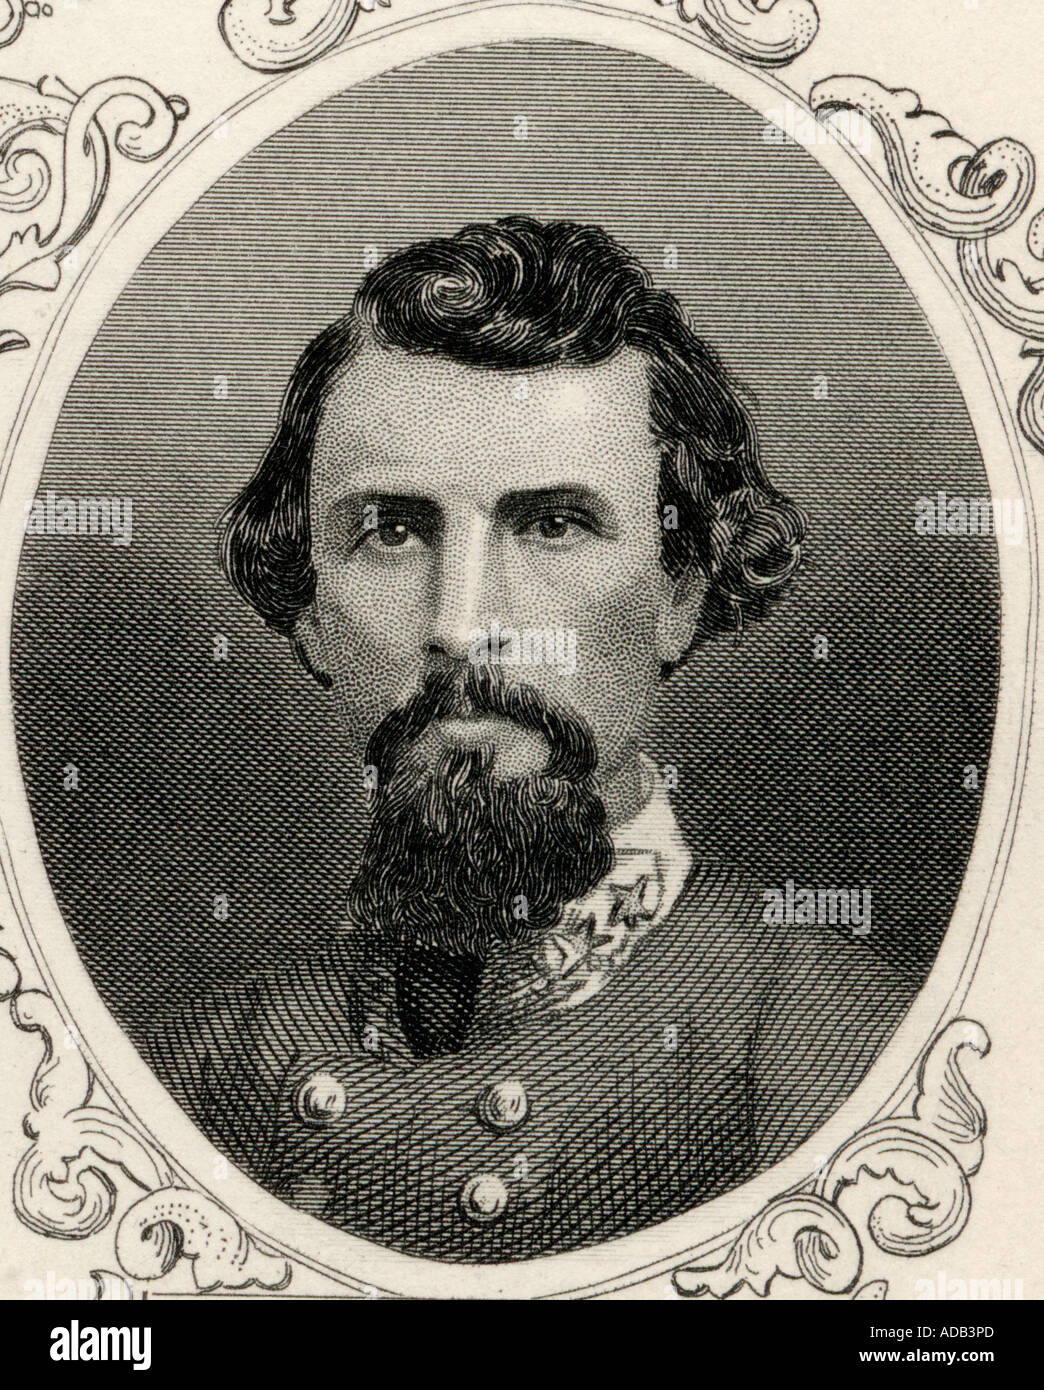 Nathan Bedford Forrest 1821 1877 American General in the Confederate army during the American civil war - Stock Image